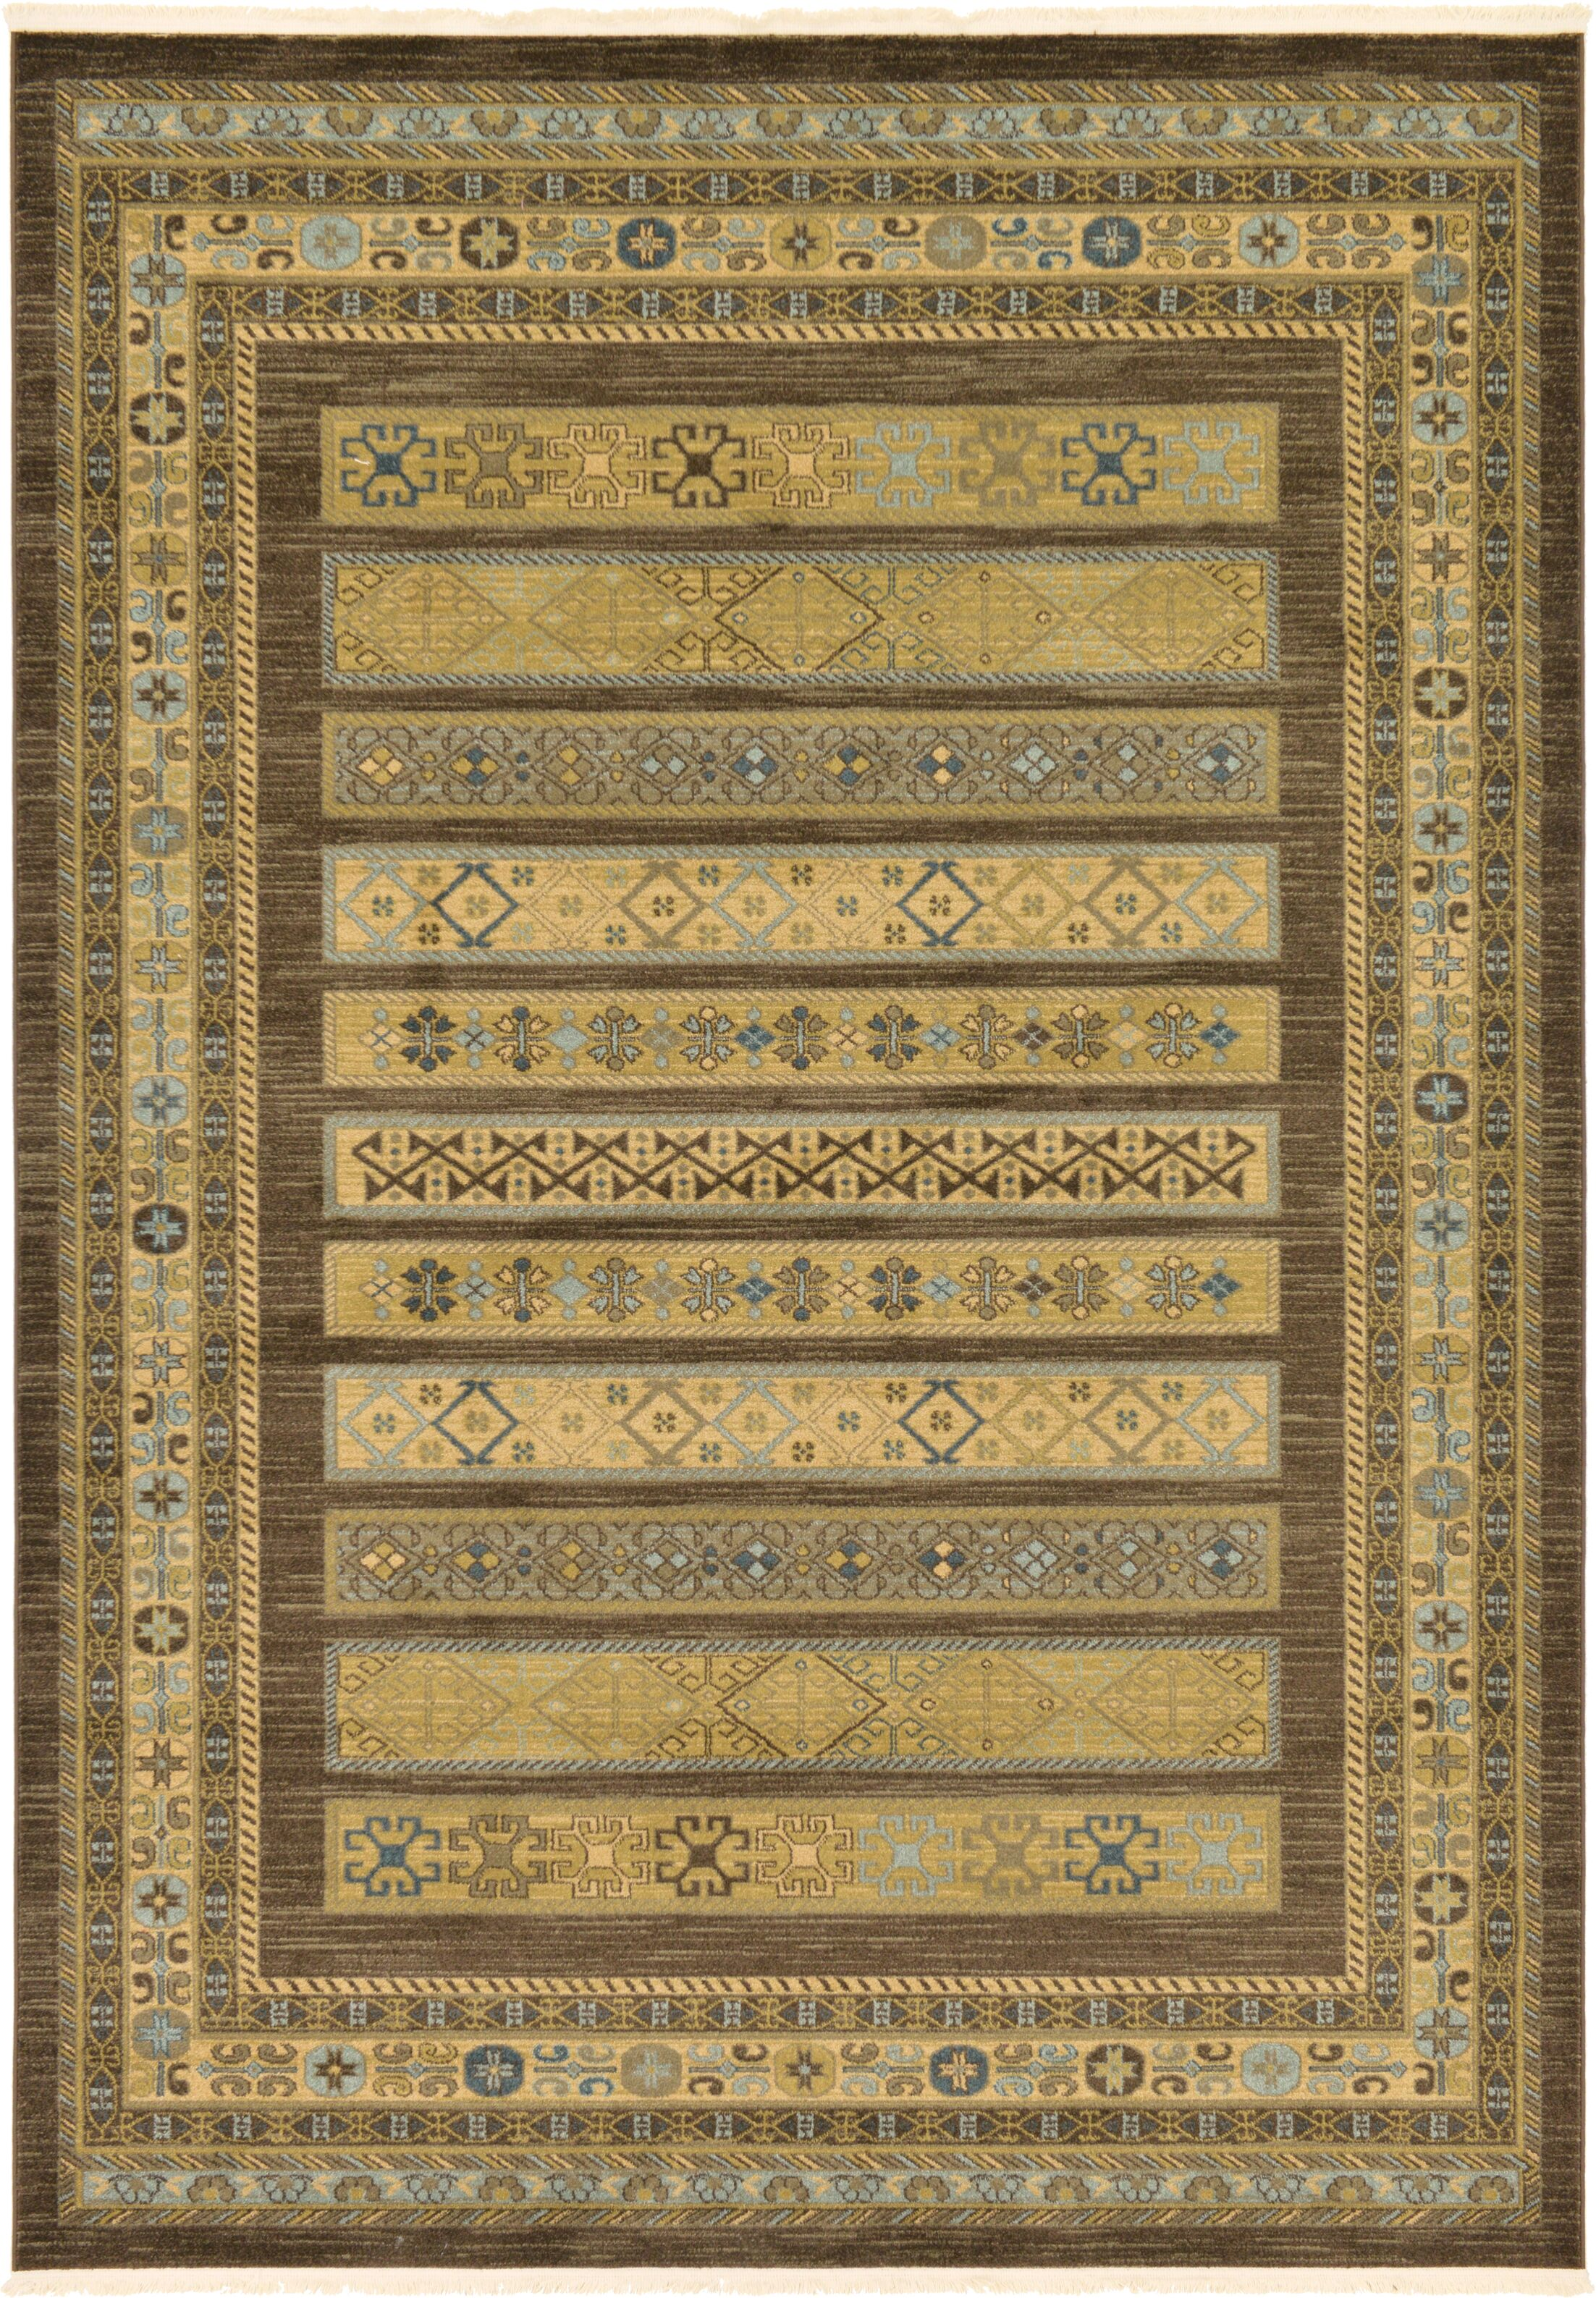 Foret Noire Brown Area Rug Rug Size: Rectangle 7' x 10'